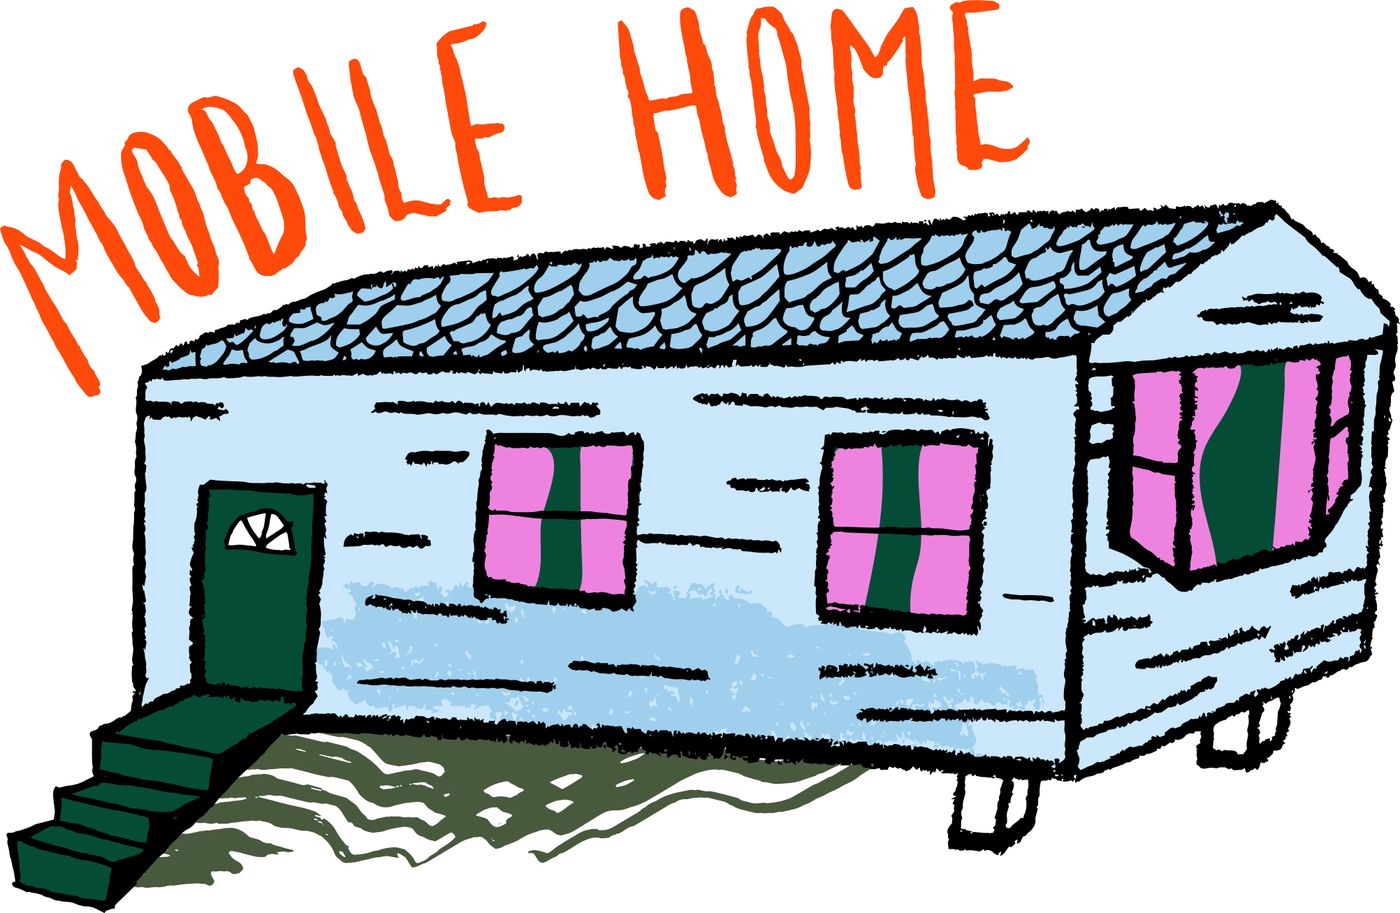 Mobile homes 101: Who's living in them and how they're made ... on bad homes, cheap homes, mind-blowing homes, ugly homes, outrageous homes, wild homes, scary homes, silly homes, funny homes, insane homes, incredible homes,